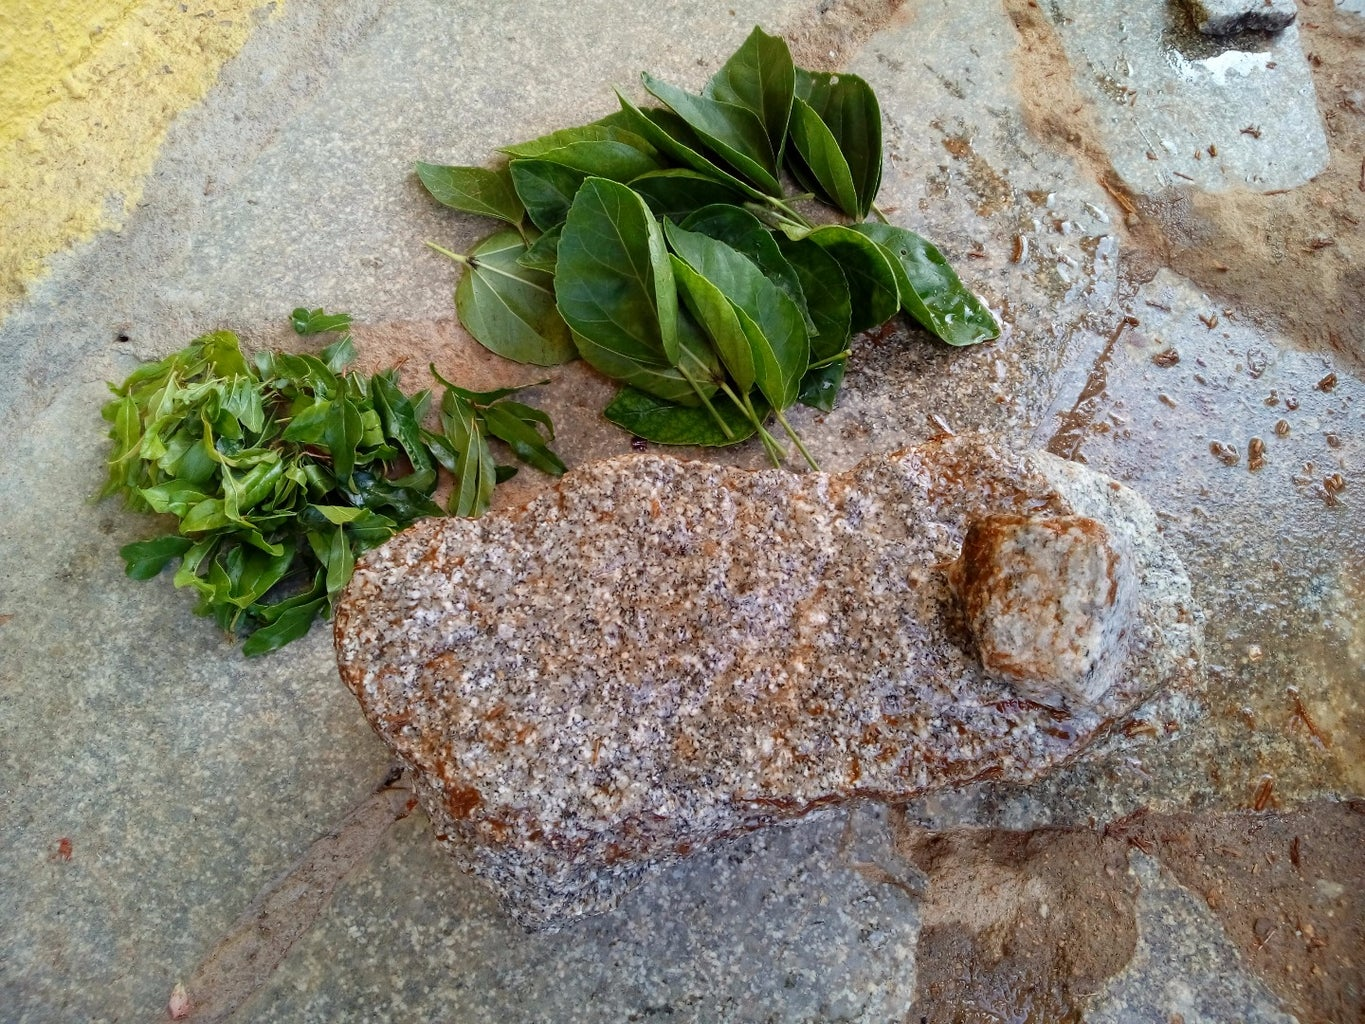 Take the Stone for Grinding the Leaves